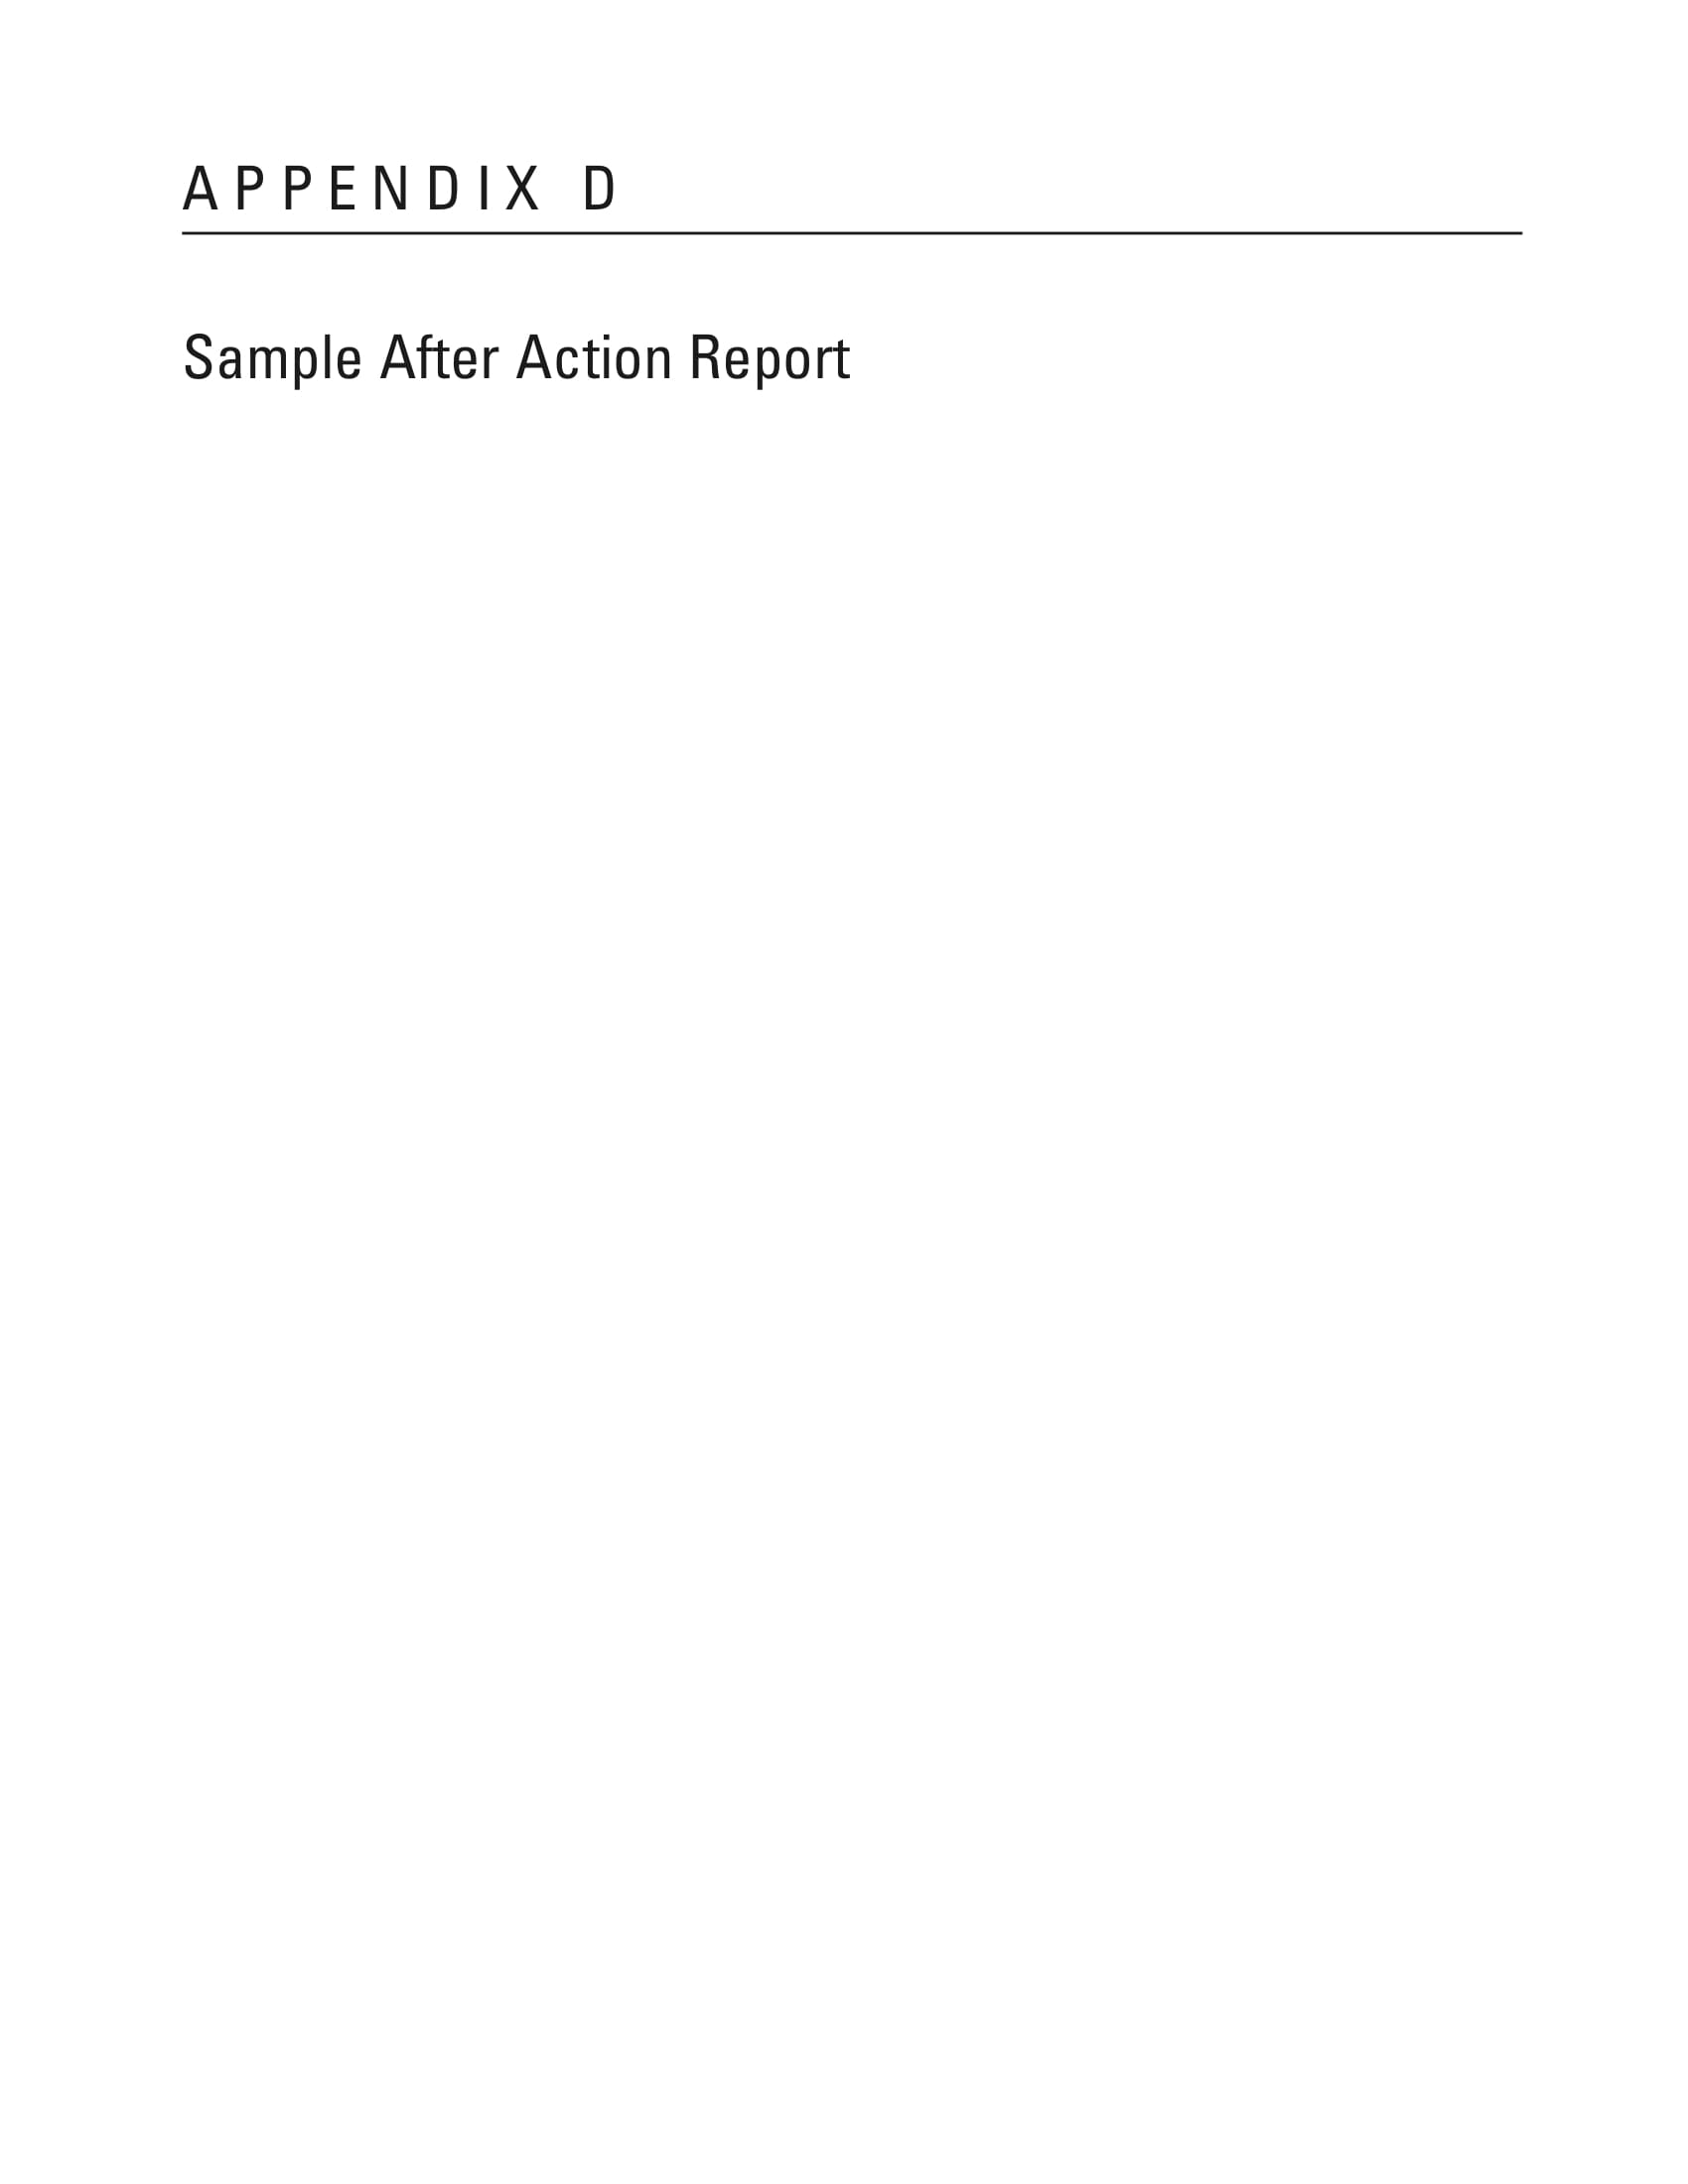 simple after action report example 01